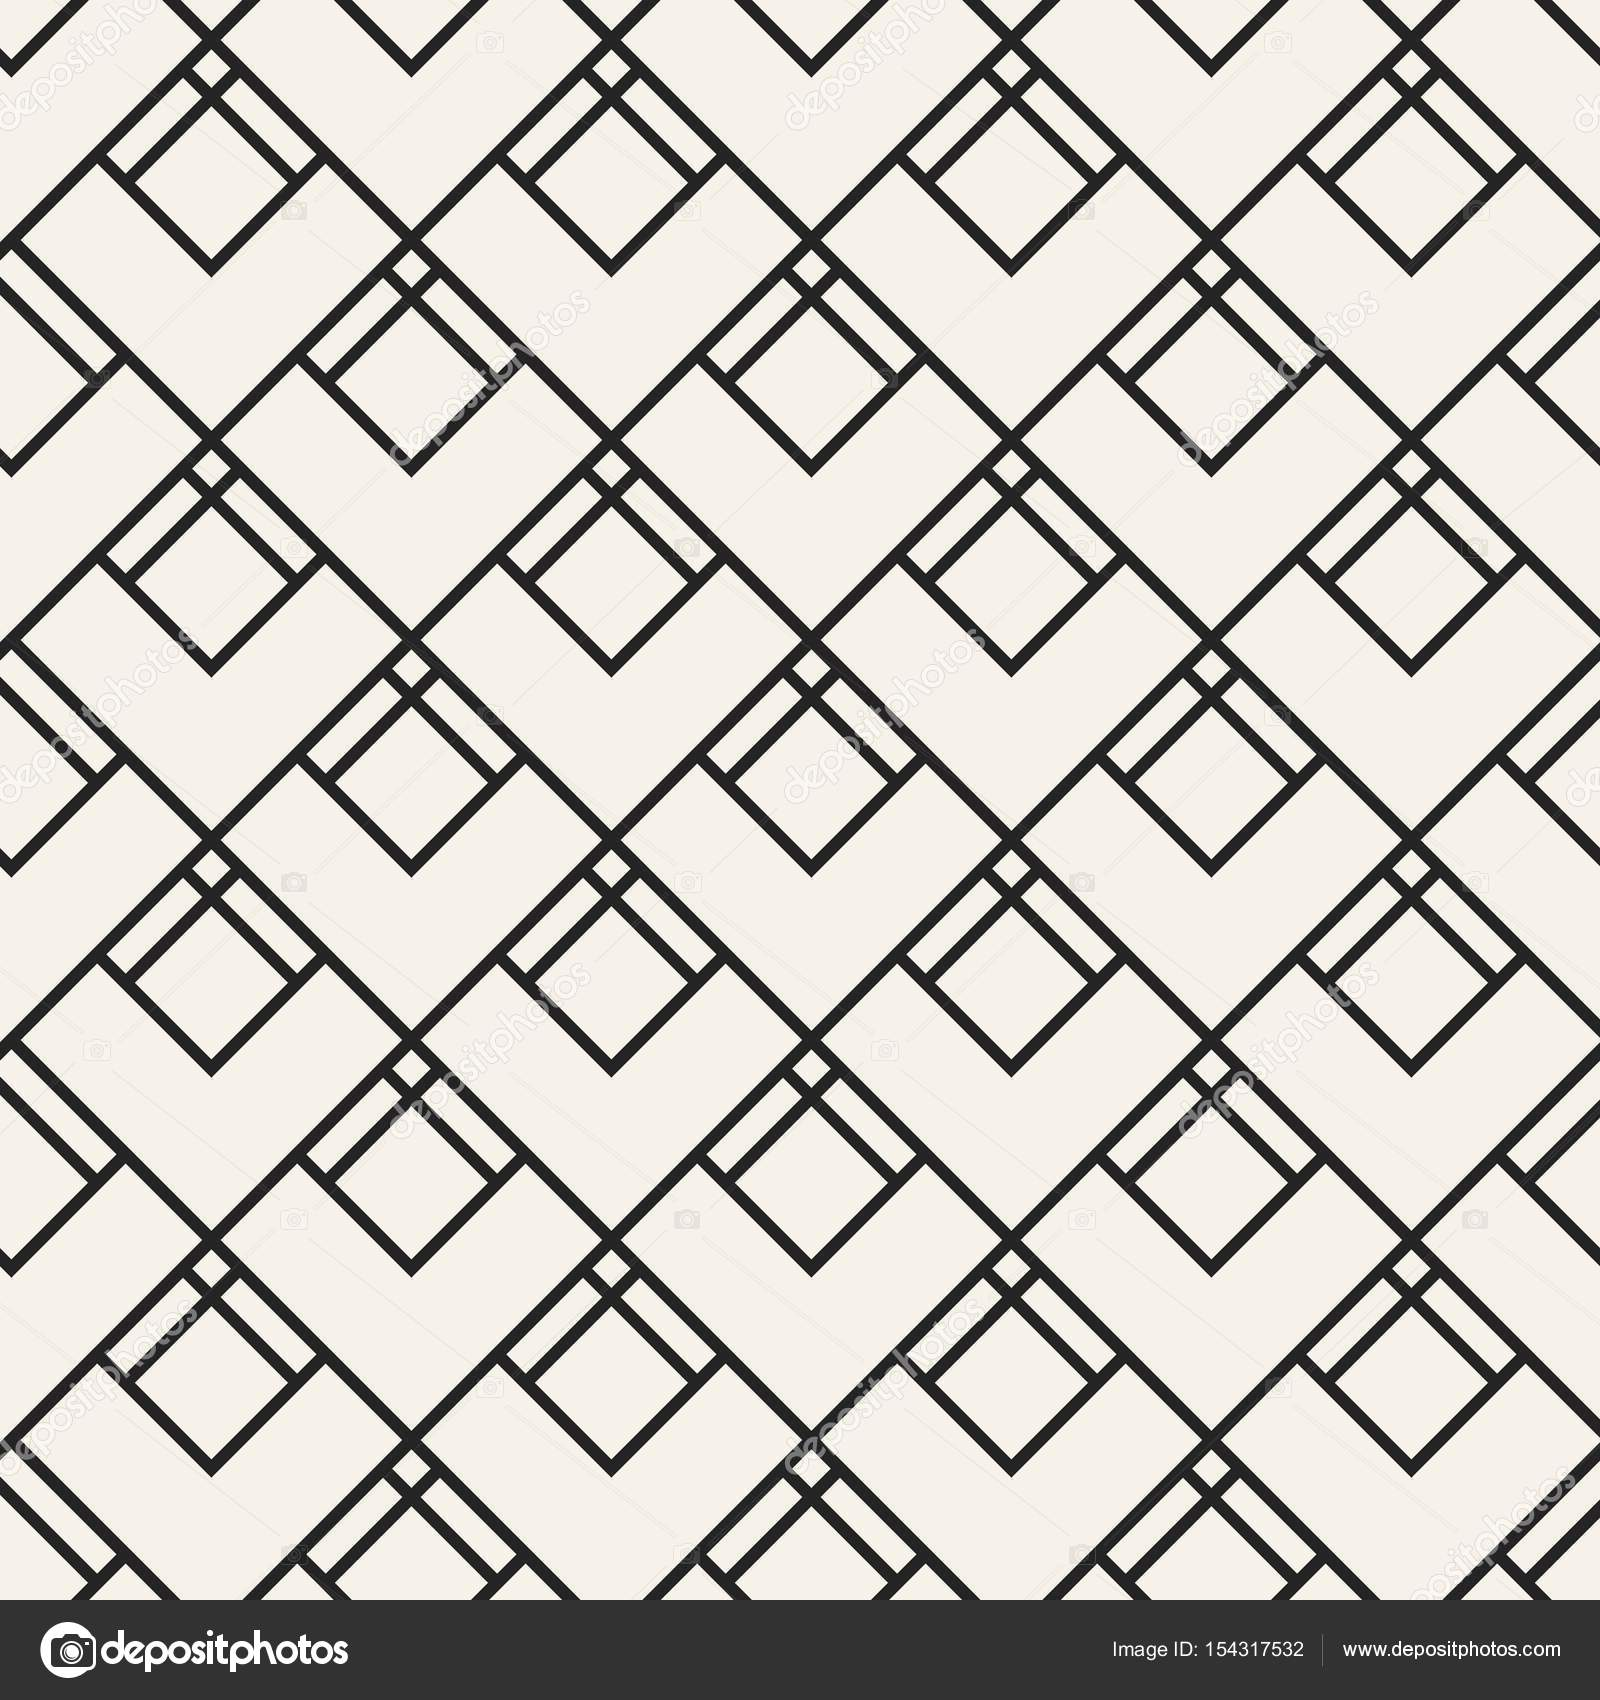 Abstract Concept Vector Monochrome Geometric Pattern Black And